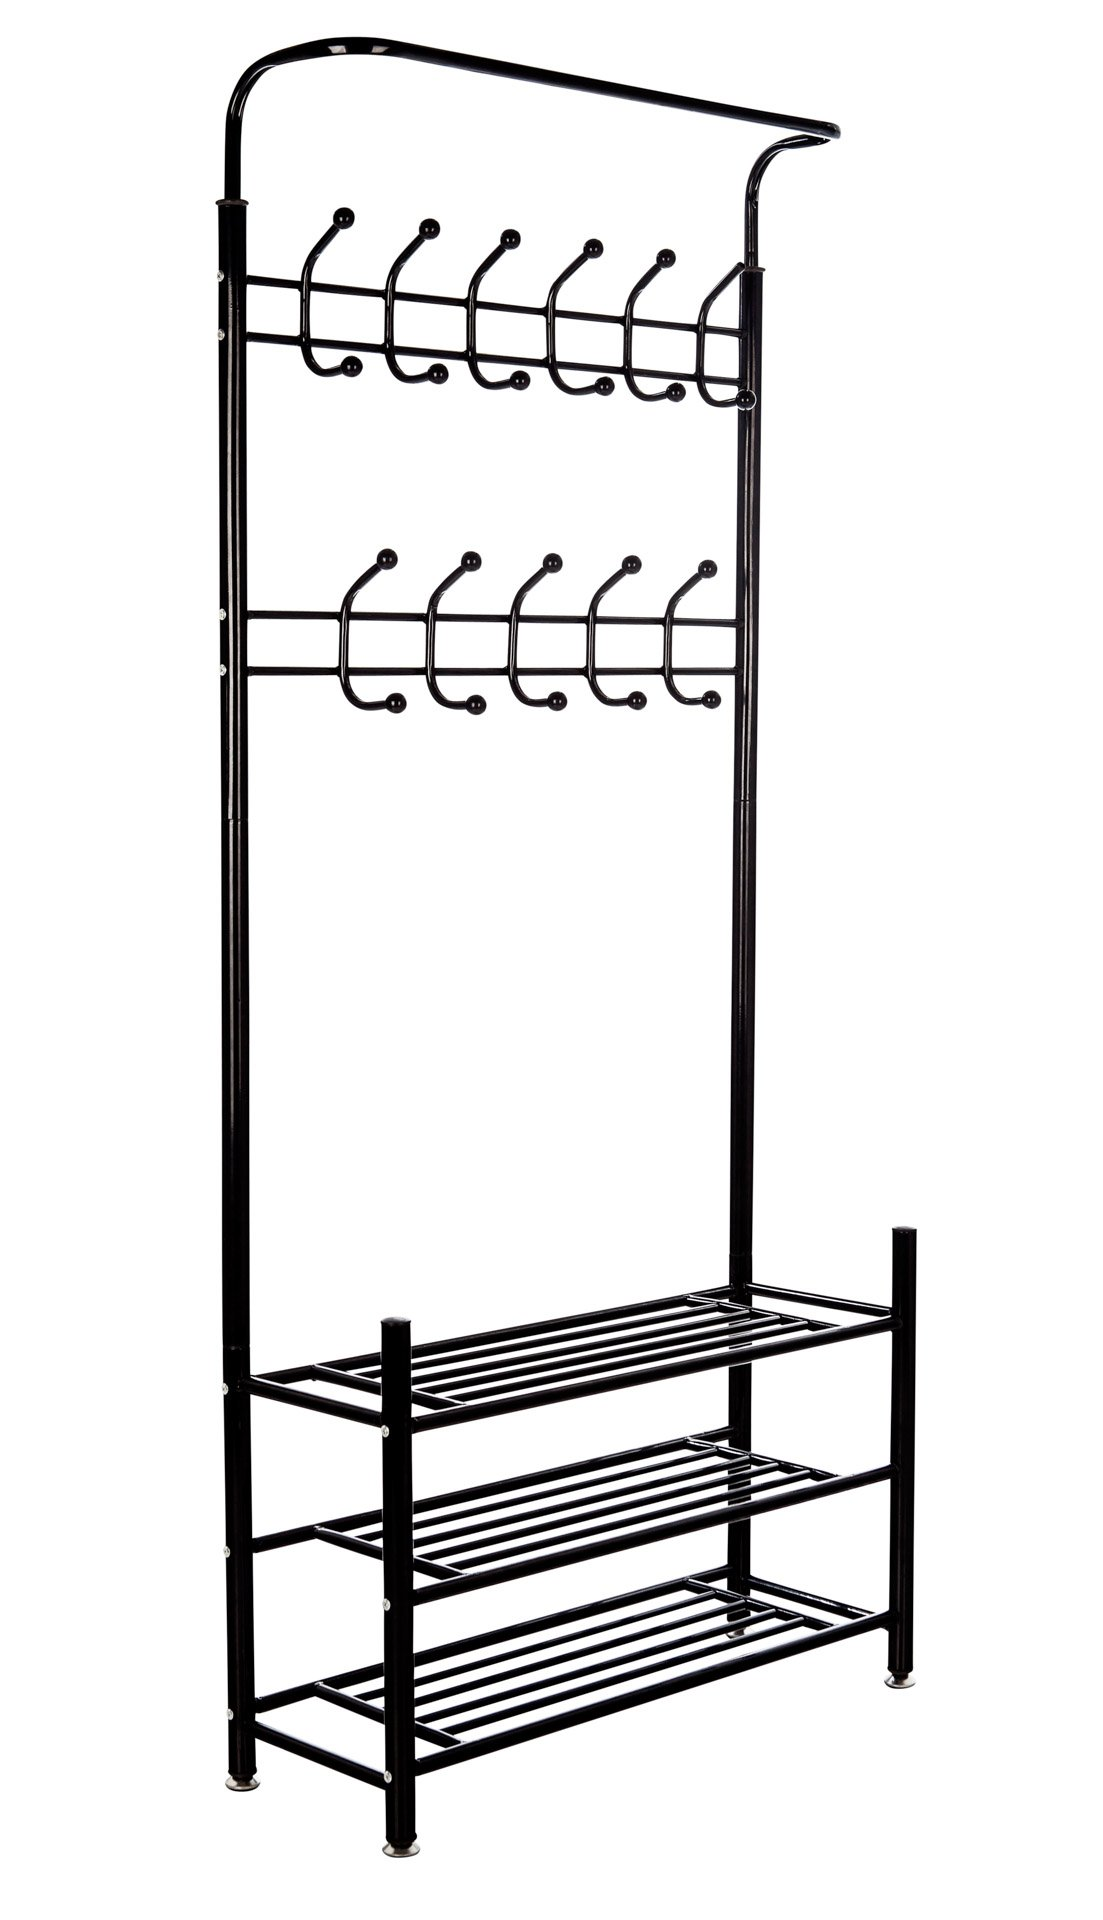 M.S.PREMIUM Metal Coat Rack and Shoe Organizer for Entryway - Hang Your Coats, Hats, Umbrellas, Bags, Boots and Shoes on This Heavy Duty, Durable Metal Coat Stand for a Tidy Hallway Always - Black - Help Organize Your Active Life: People are always on the go, coming and going. Wouldn't it help to have shoes and coats right there where you need them? Grab and Go Utility: Coats, keys, dog leashes, shoes, backpacks, hats, a scarf – keep all those and more hanging immediately to hand Steady, Heavy Duty Helper: Each hook holds up to 5.5 lbs. Go ahead, toss that heavy coat up, this sturdy steel rack won't wobble! - hall-trees, entryway-furniture-decor, entryway-laundry-room - 71vArZJ fiL -